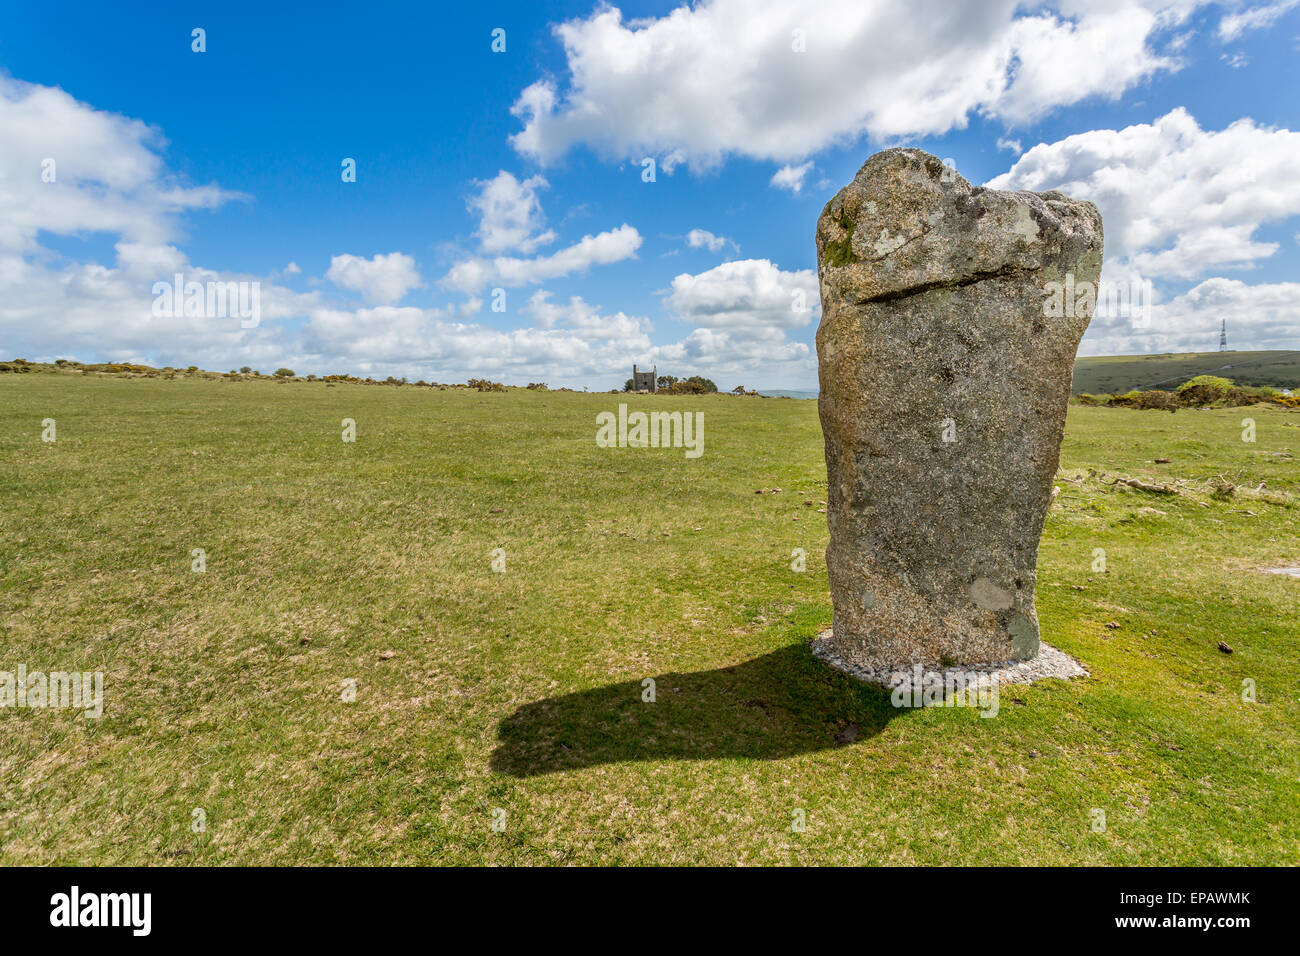 Stone cirlce on bodmin moor called the The Hurlers near minions in cornwall england uk - Stock Image